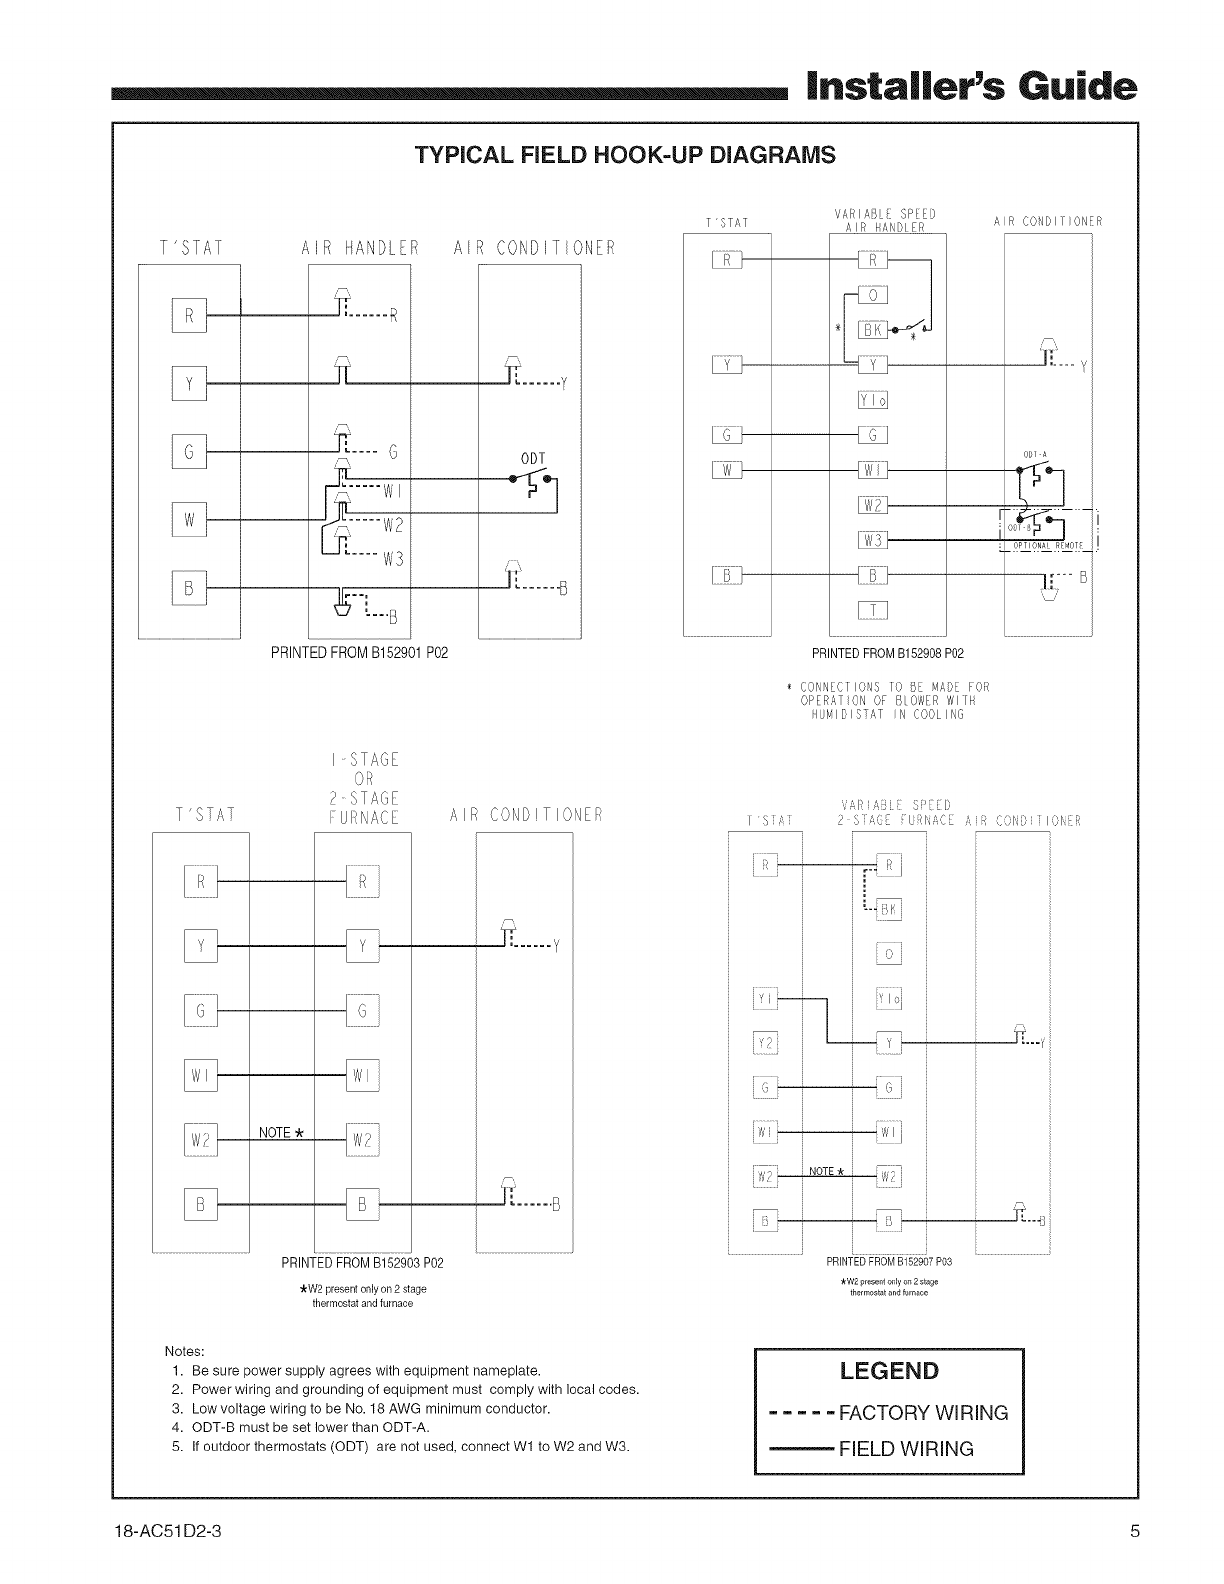 Trane Air Conditioner Heat Pumpoutside Unit Manual L0903230 Diagram Handler Also In Addition Nstal Ers Guide